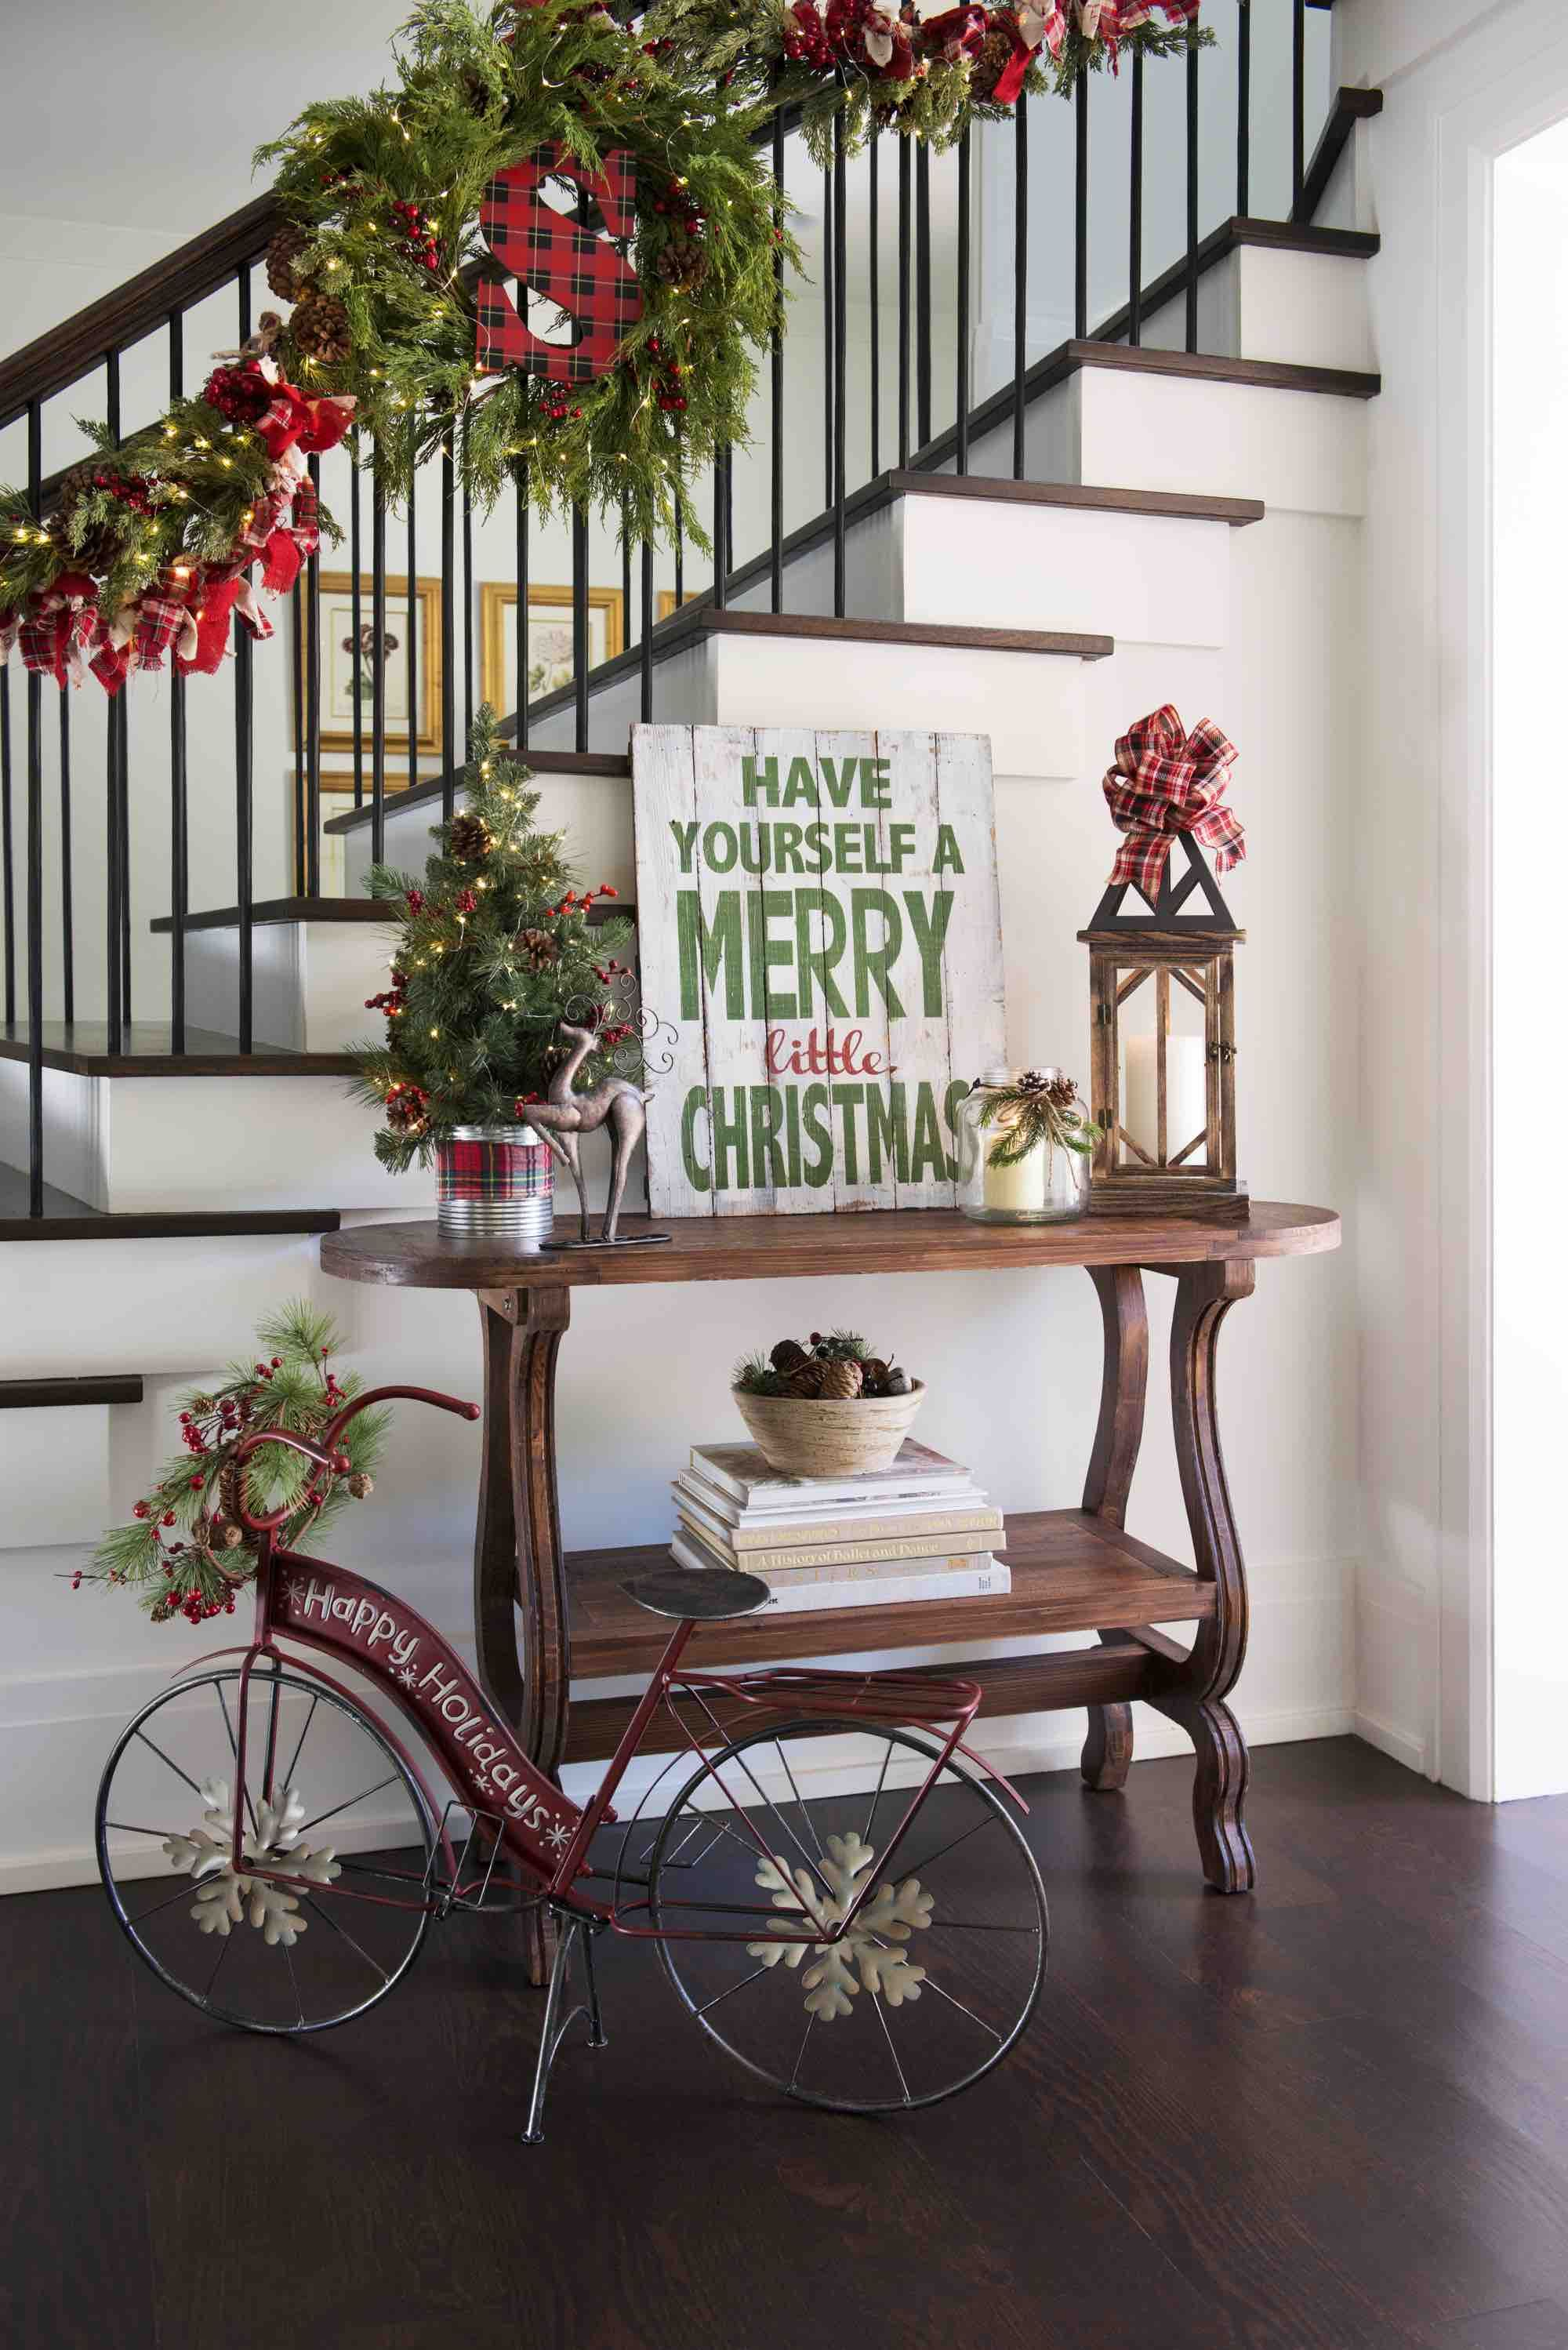 greet guests every day with a holiday themed entryway shop kirklands christmasland collection and learn best practices by reading our christmas entryway - Entryway Christmas Decorations